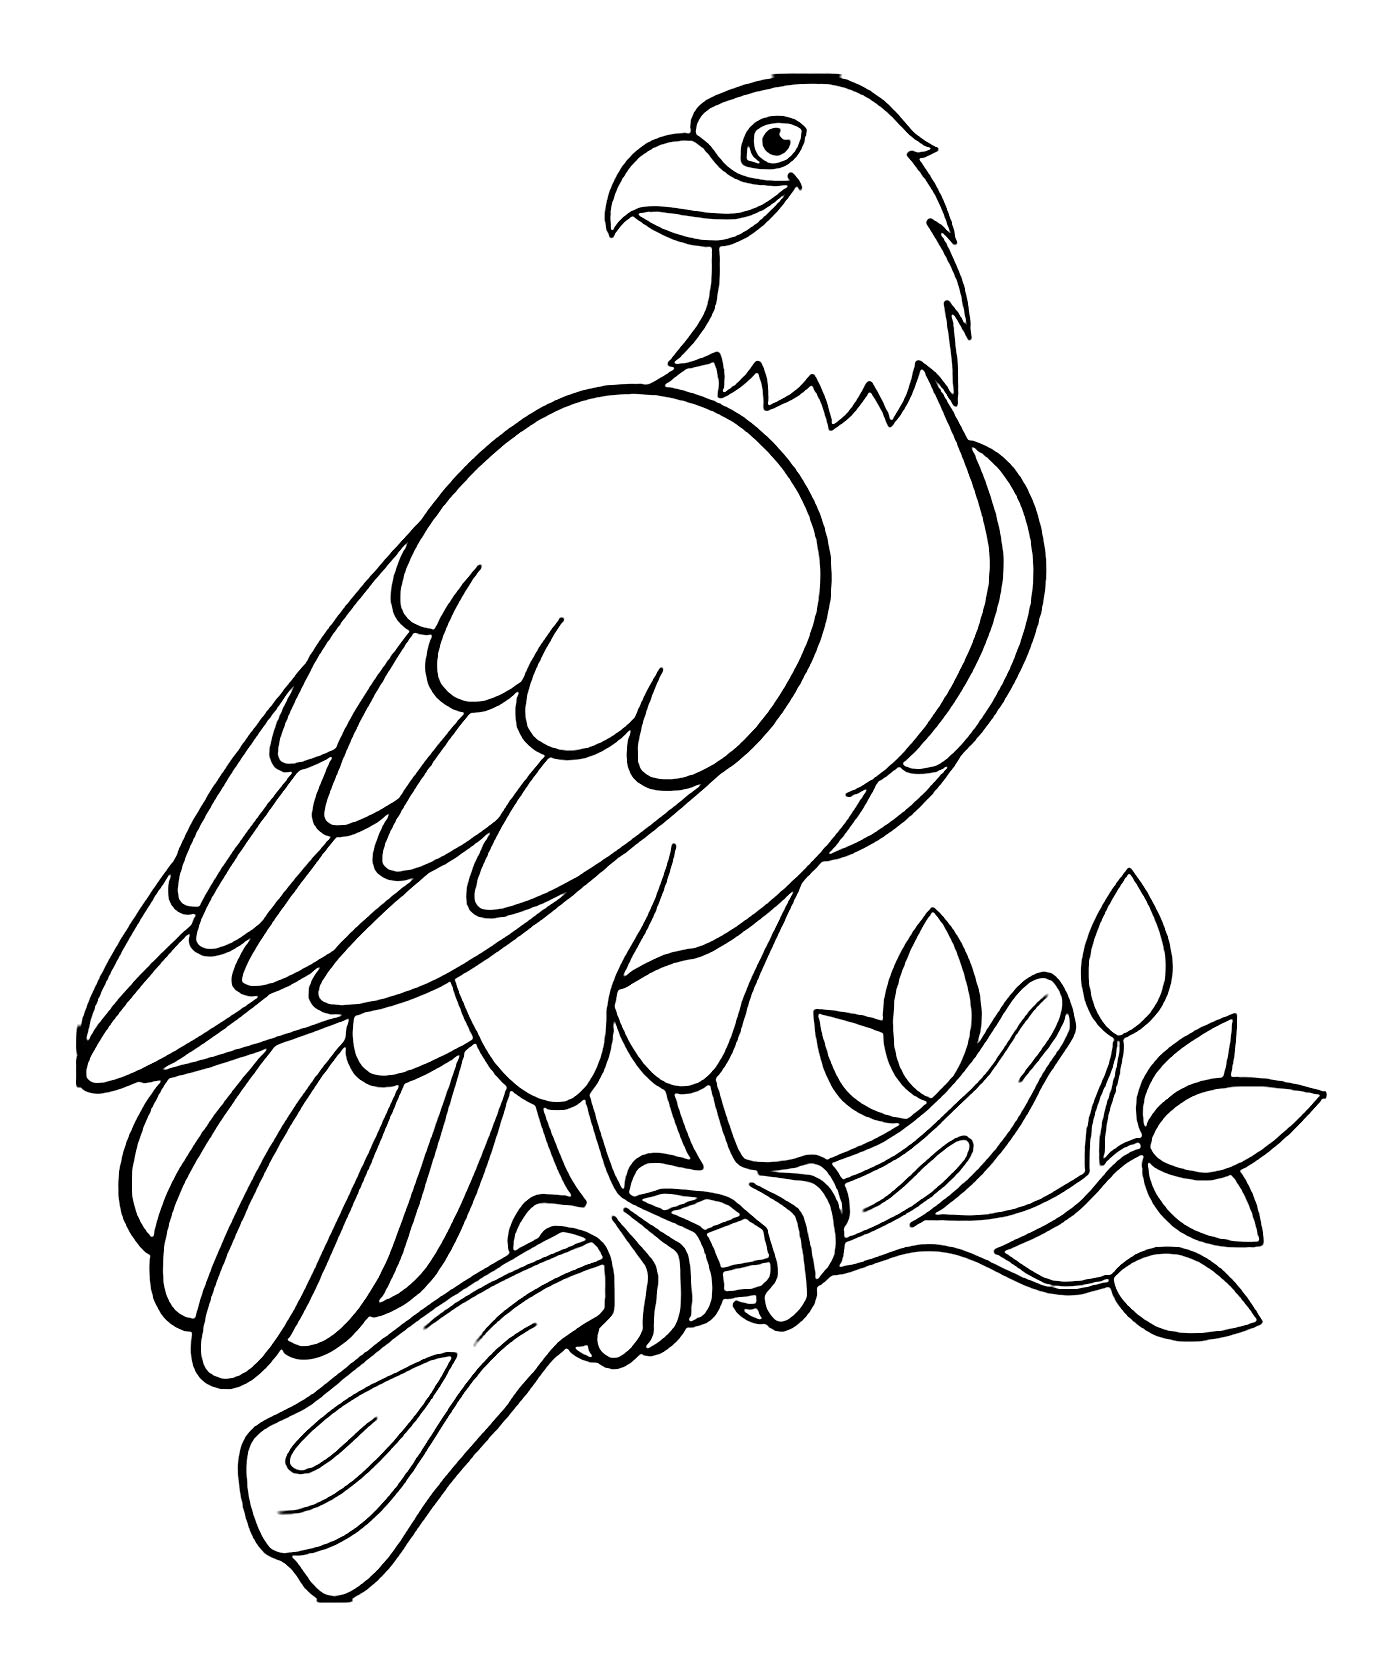 pictures of birds to color bird coloring pages birds pictures of to color